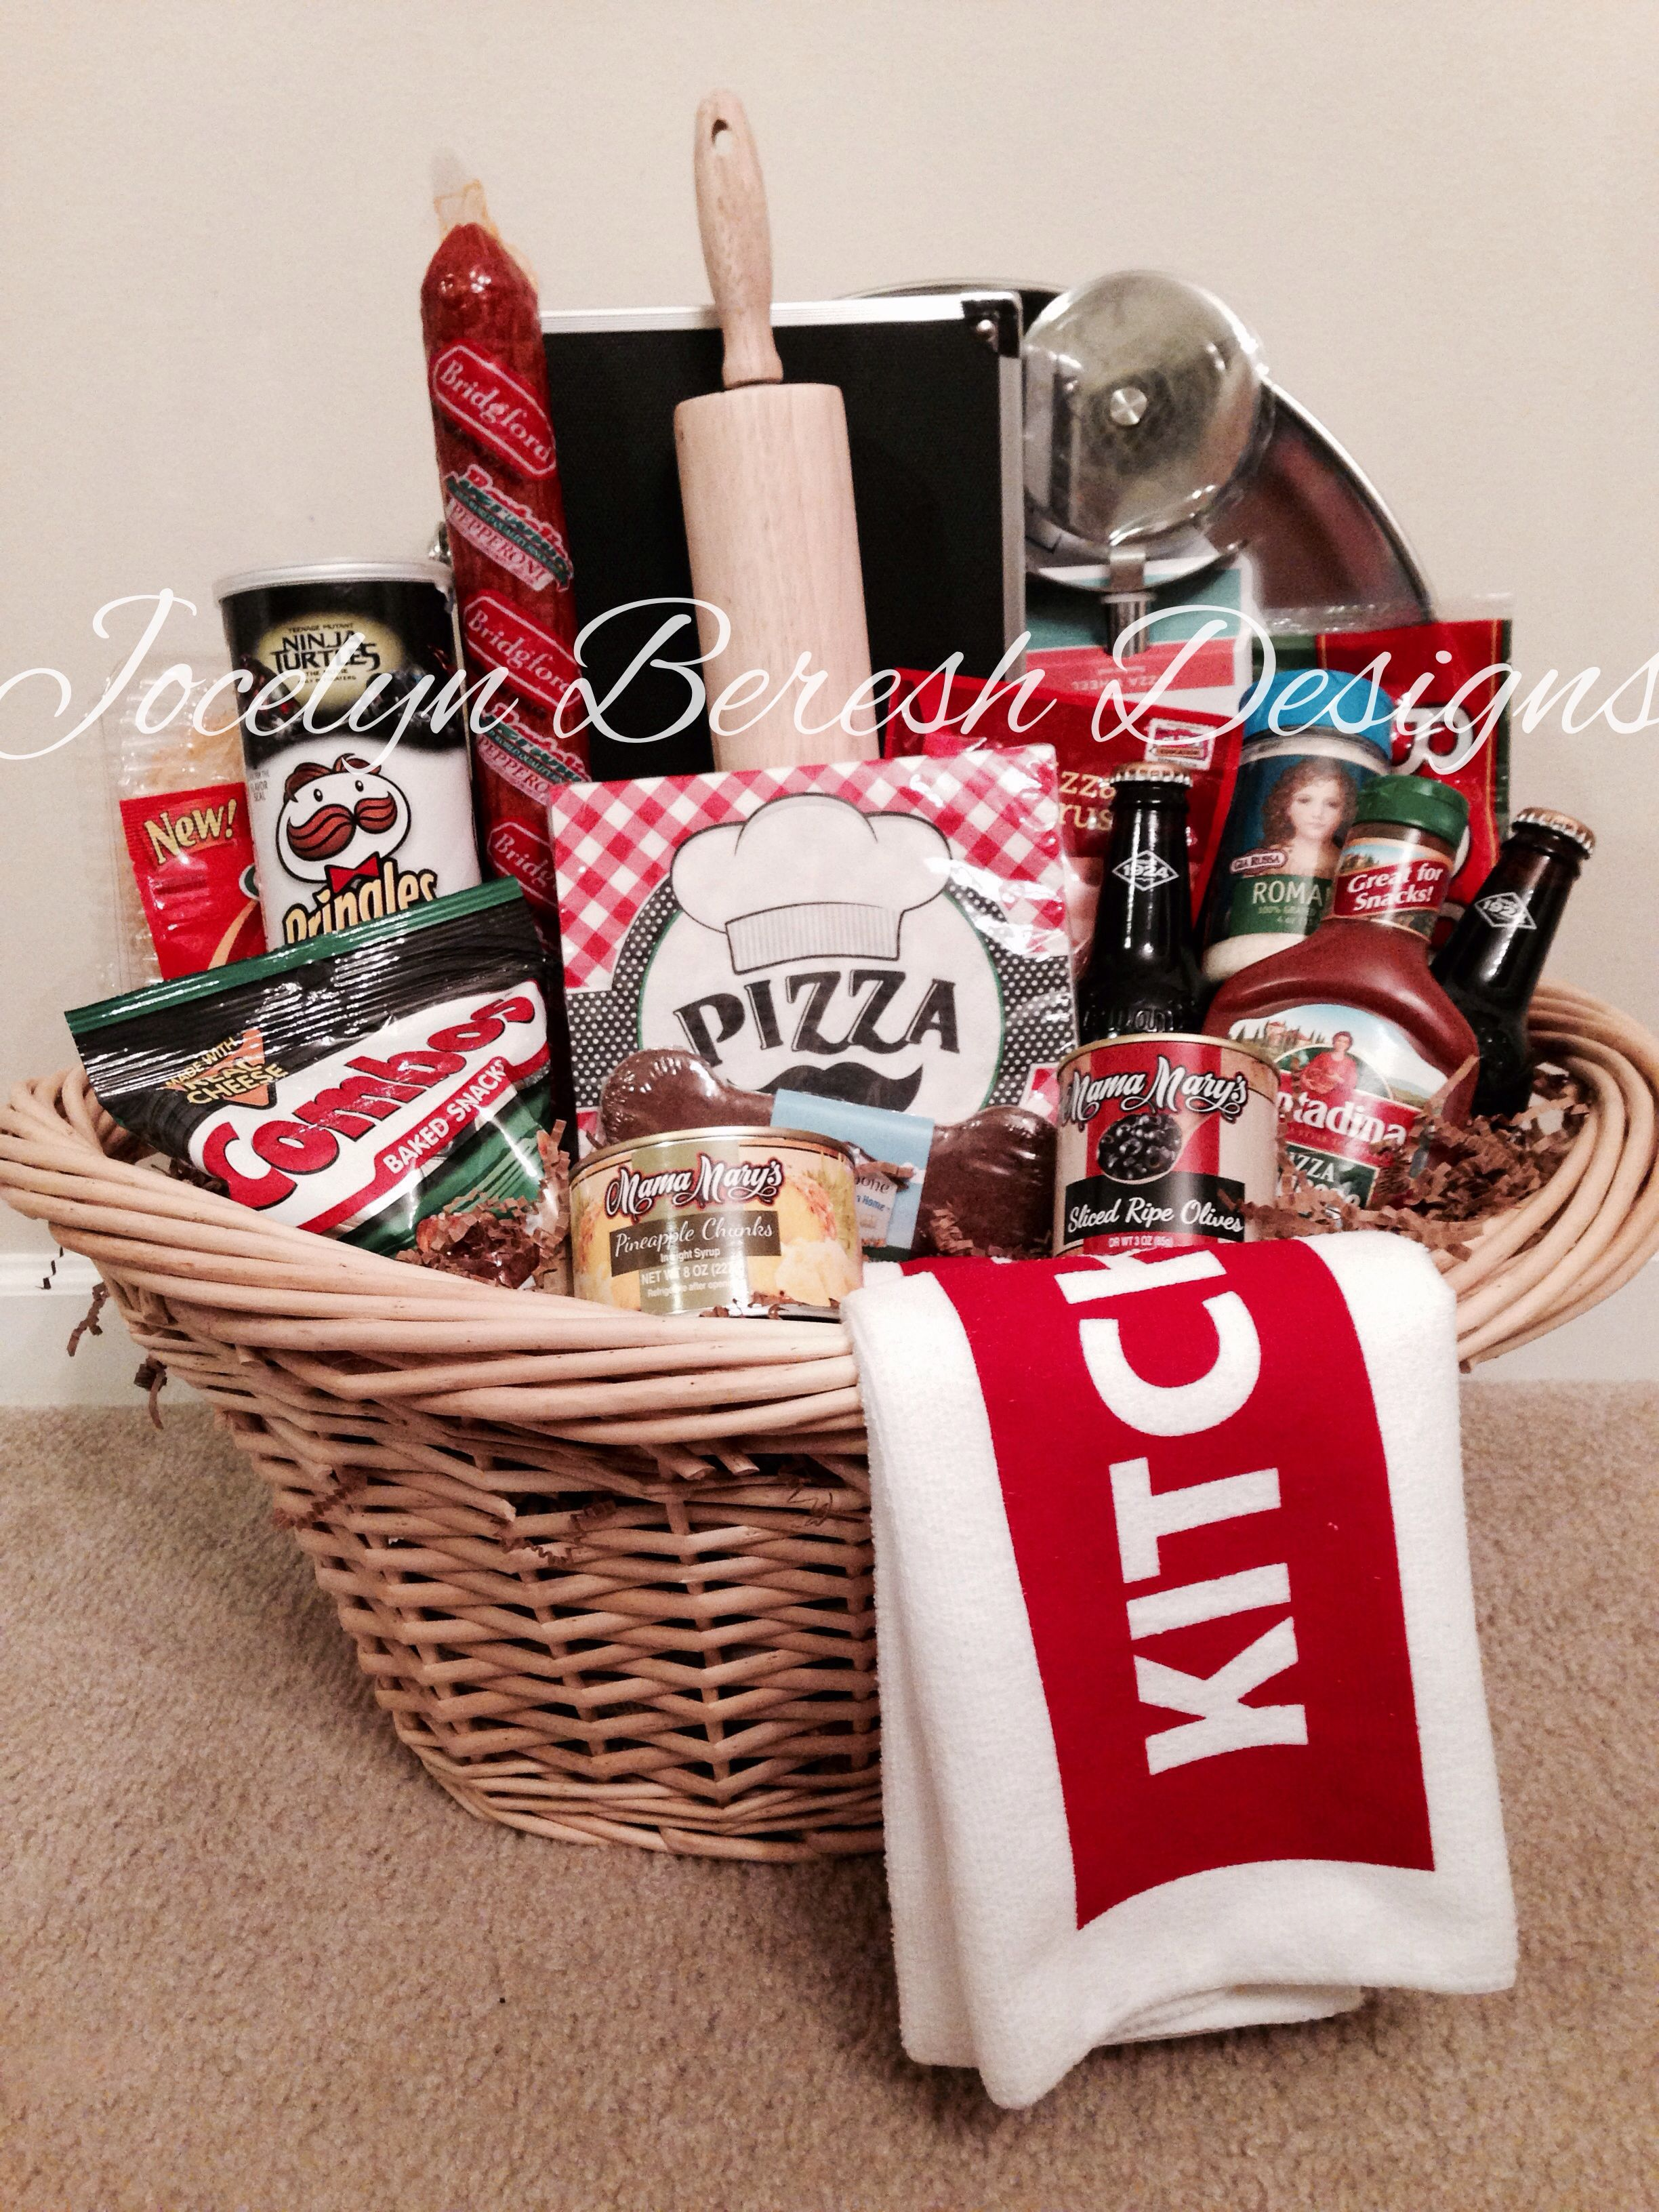 Pizza Night Basket by jocelynbereshdesigns. Luxury gift baskets. Customs gift  baskets. Fundraising baskets. Pittsburgh gifts. Family Gifts.